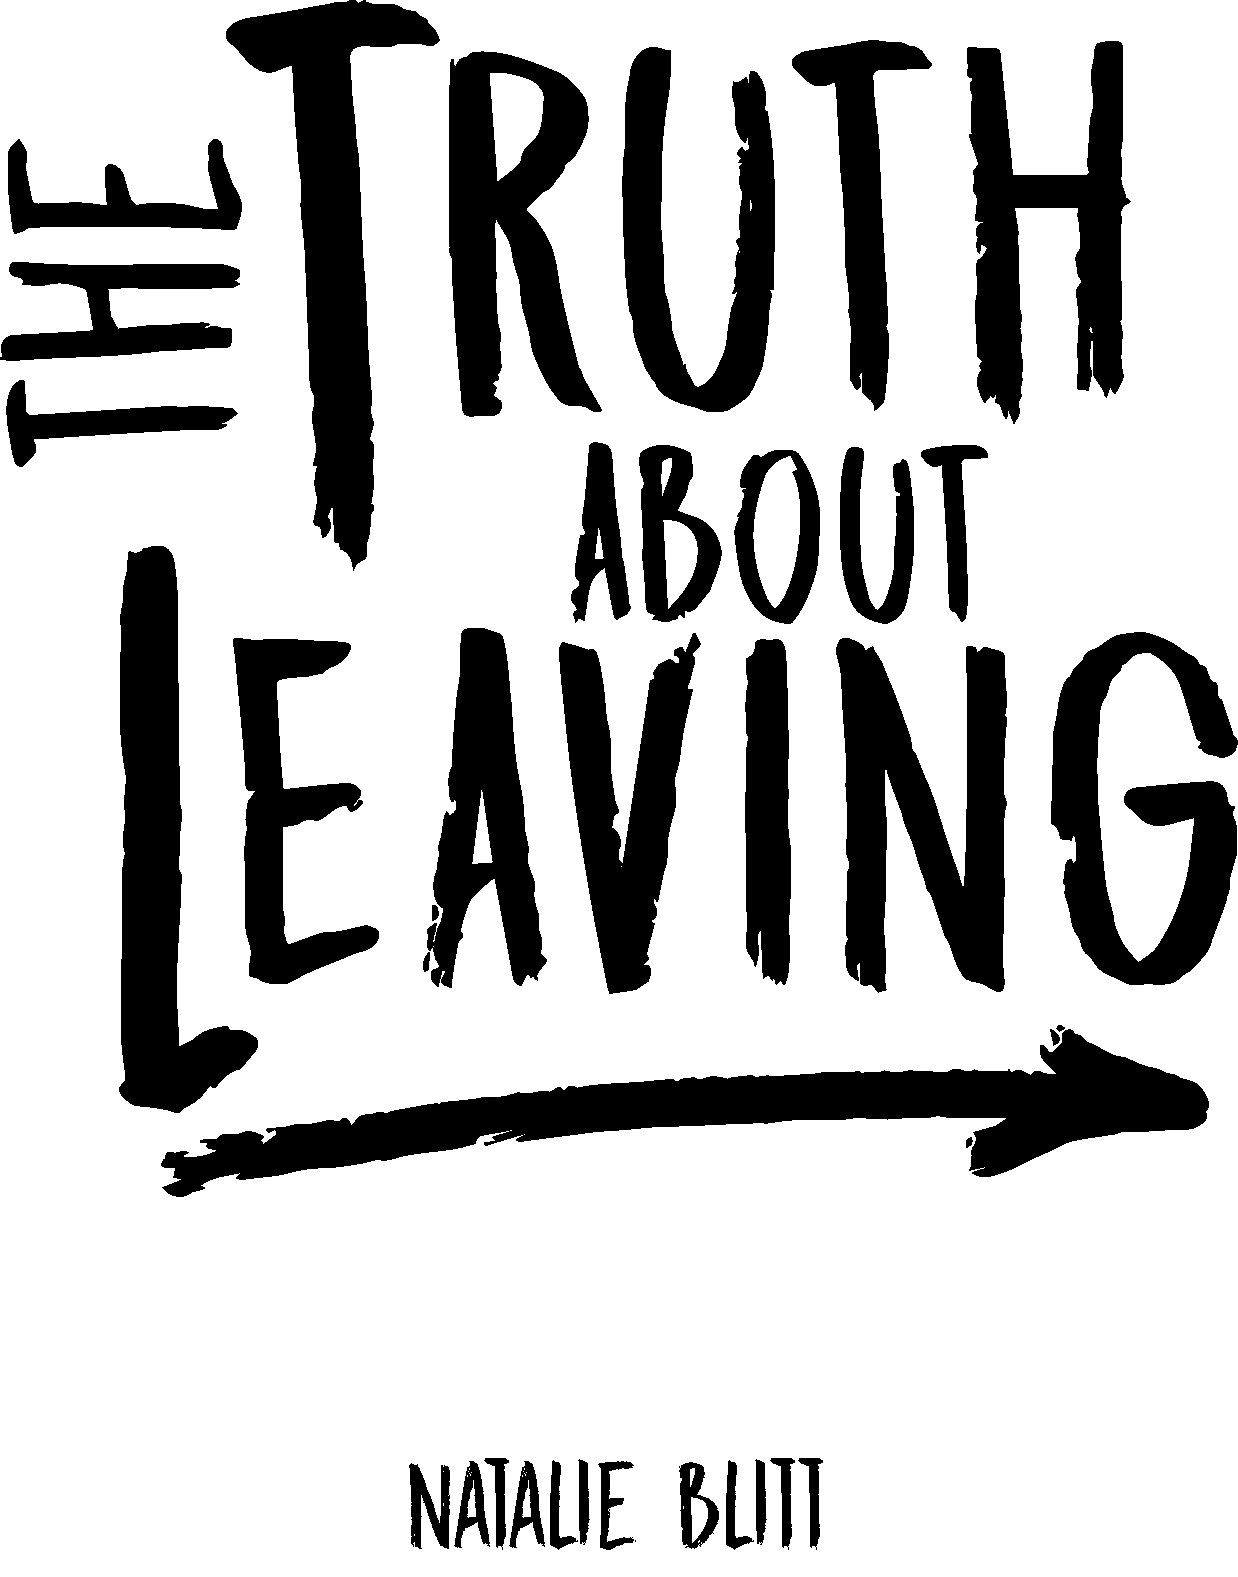 Blitt Natalie_The Truth About Leaving_Title Page_10-31-18.png